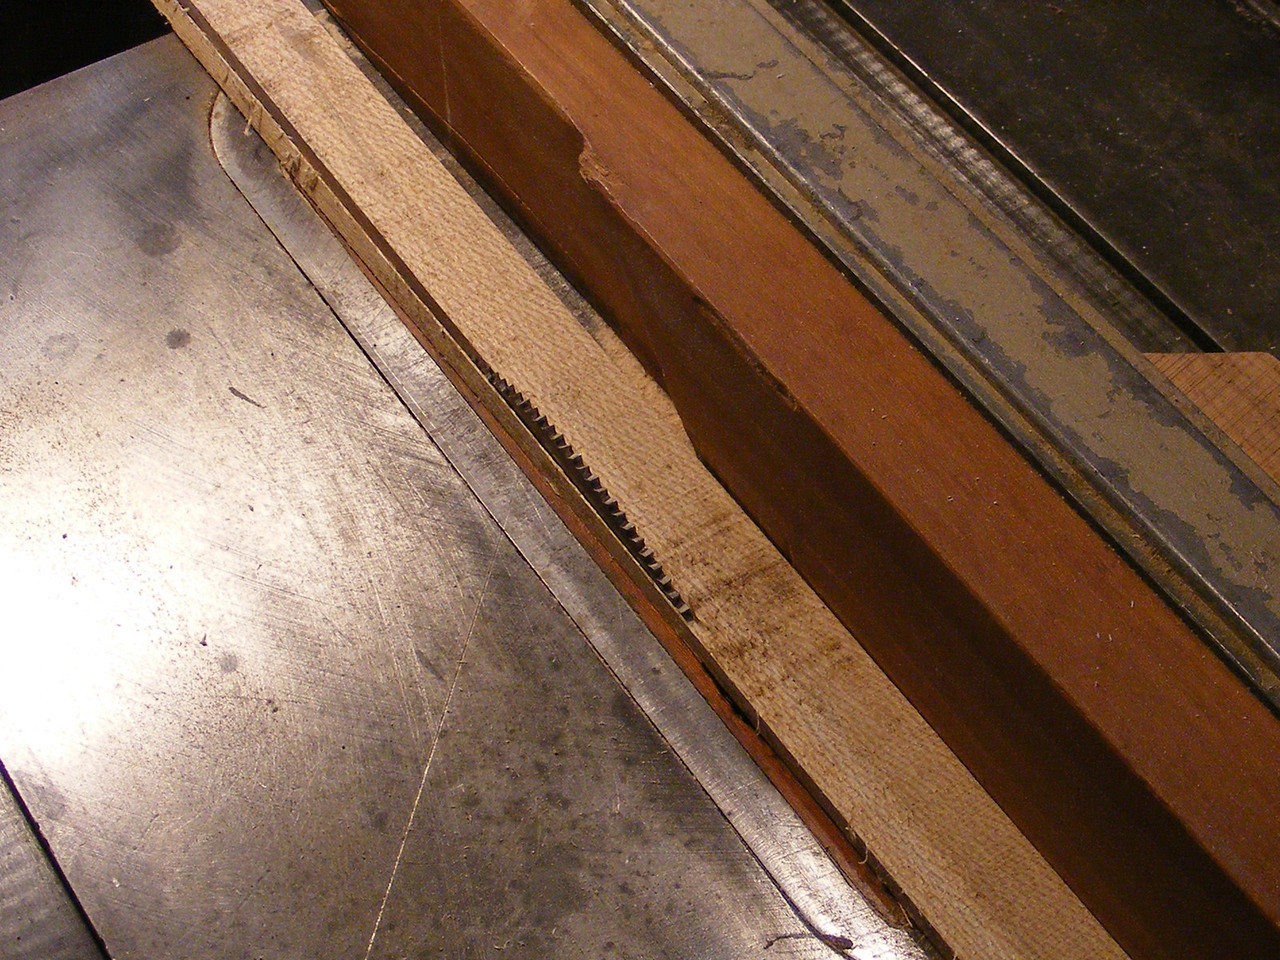 3 - Making a Tumbling Block Cribbage Board <br /> This picture shows the strip as it is part way through the cut. I use a hollow ground plywood blade in trimming the strips and in cutting the pieces. The blade will make a satin smooth cut. When the blade needs sharpening, I do that then in putting it back on the spindle I tighten the nut and spin the blade by hand a few turns. You will see the blade has a little wobble. I loosen the nut and turn the blade a bit on the spindle and then tighten the nut. I do this until I find the place where the wobble is taken out. It doesn't take much of a wobble to be over .005.